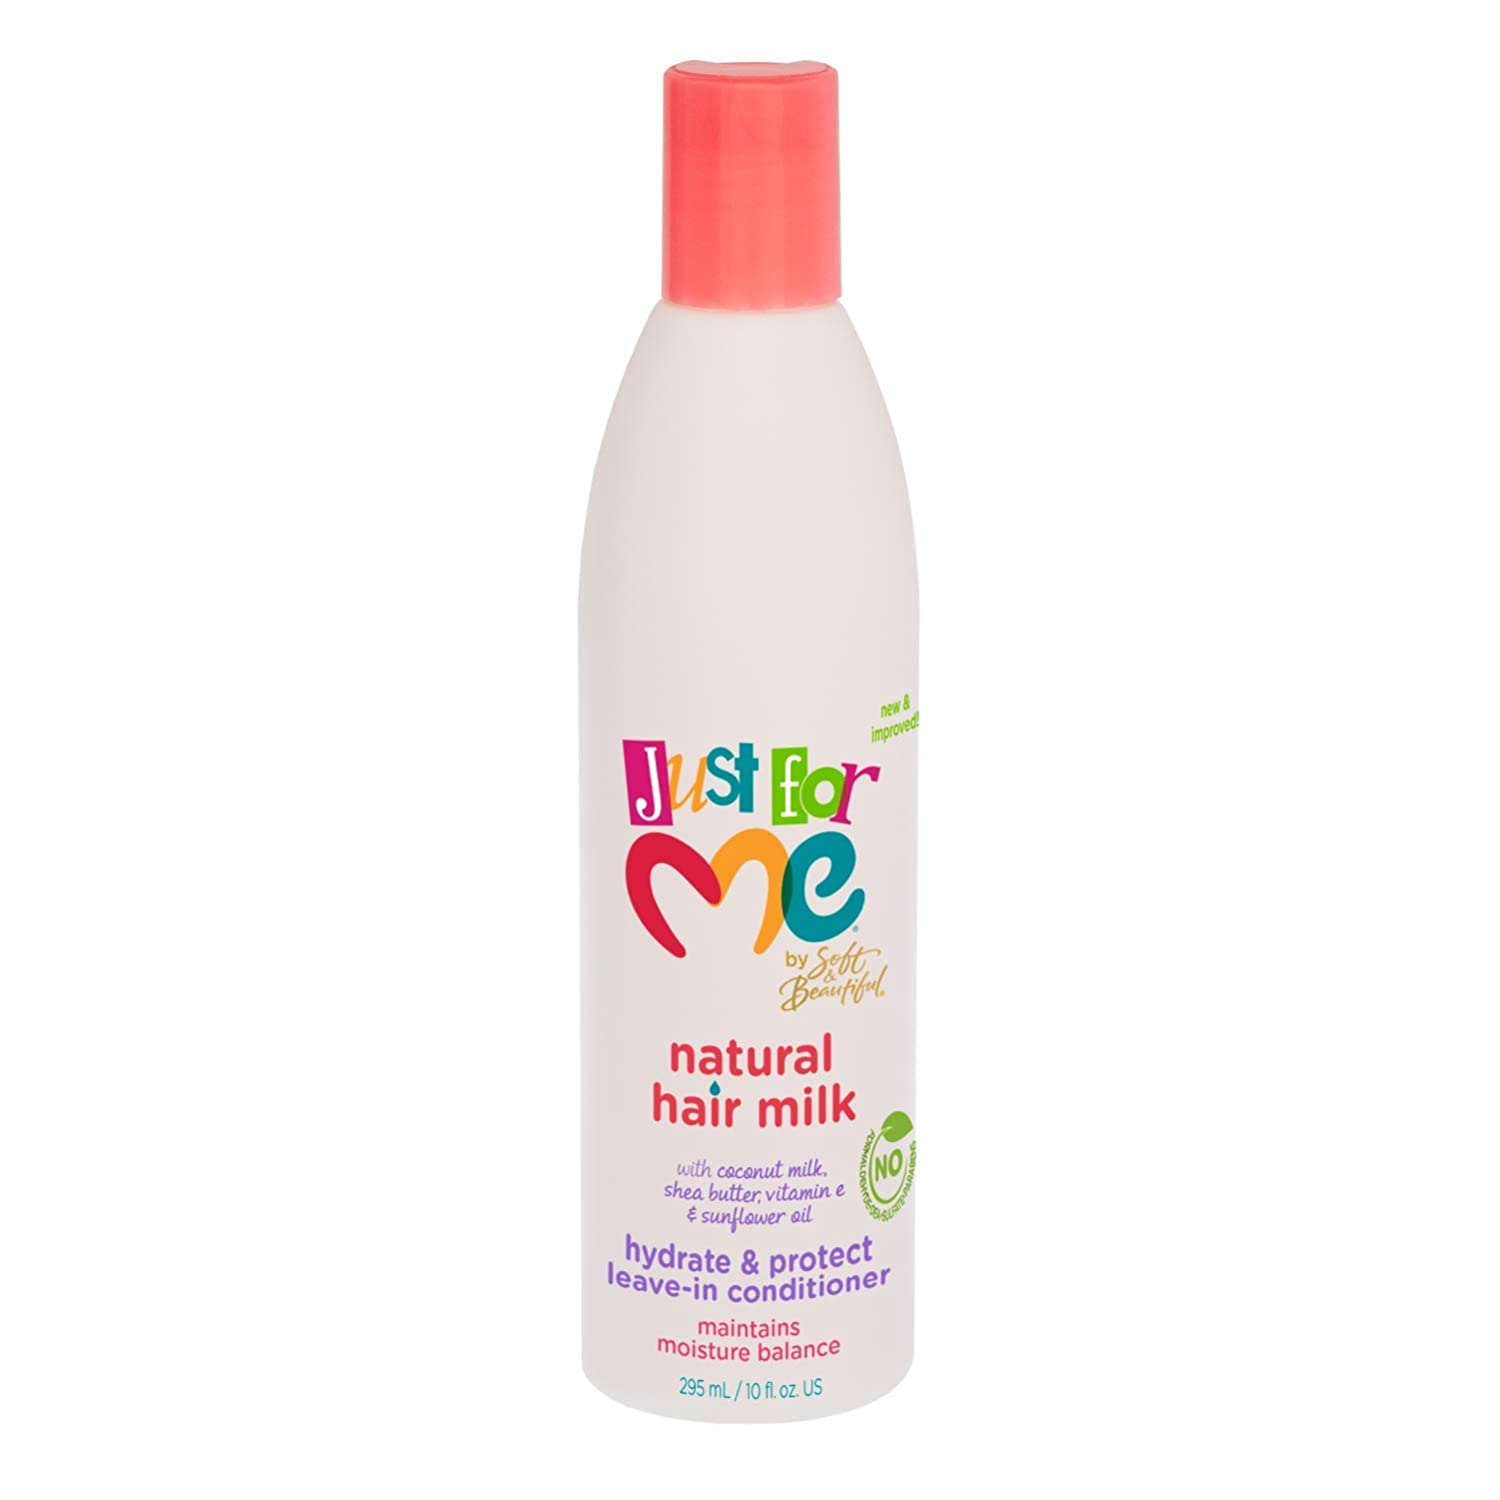 Just For Me Natural Hair Milk Hydrate & Protect Leave-In Conditioner